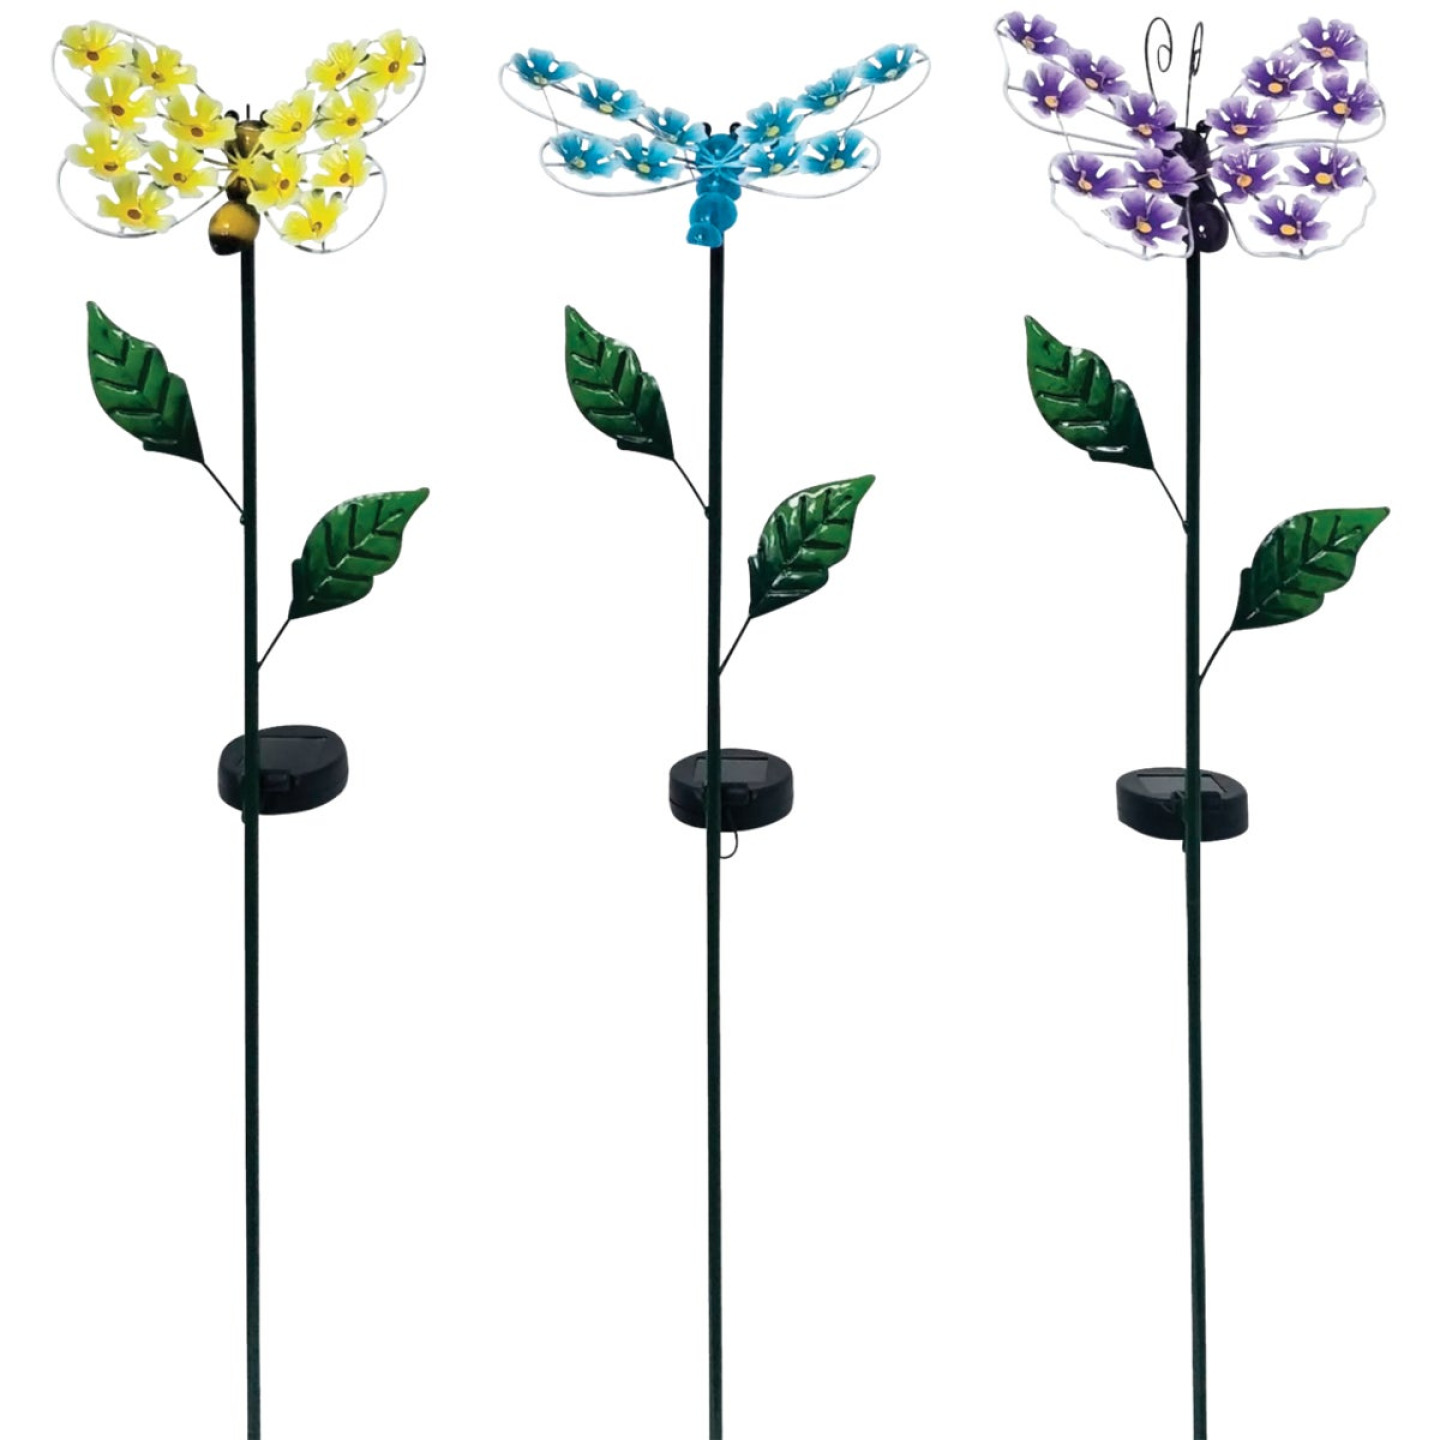 Alpine Metal 33 In. H. Insect with Hydrangea Wings Solar Stake Light Image 1